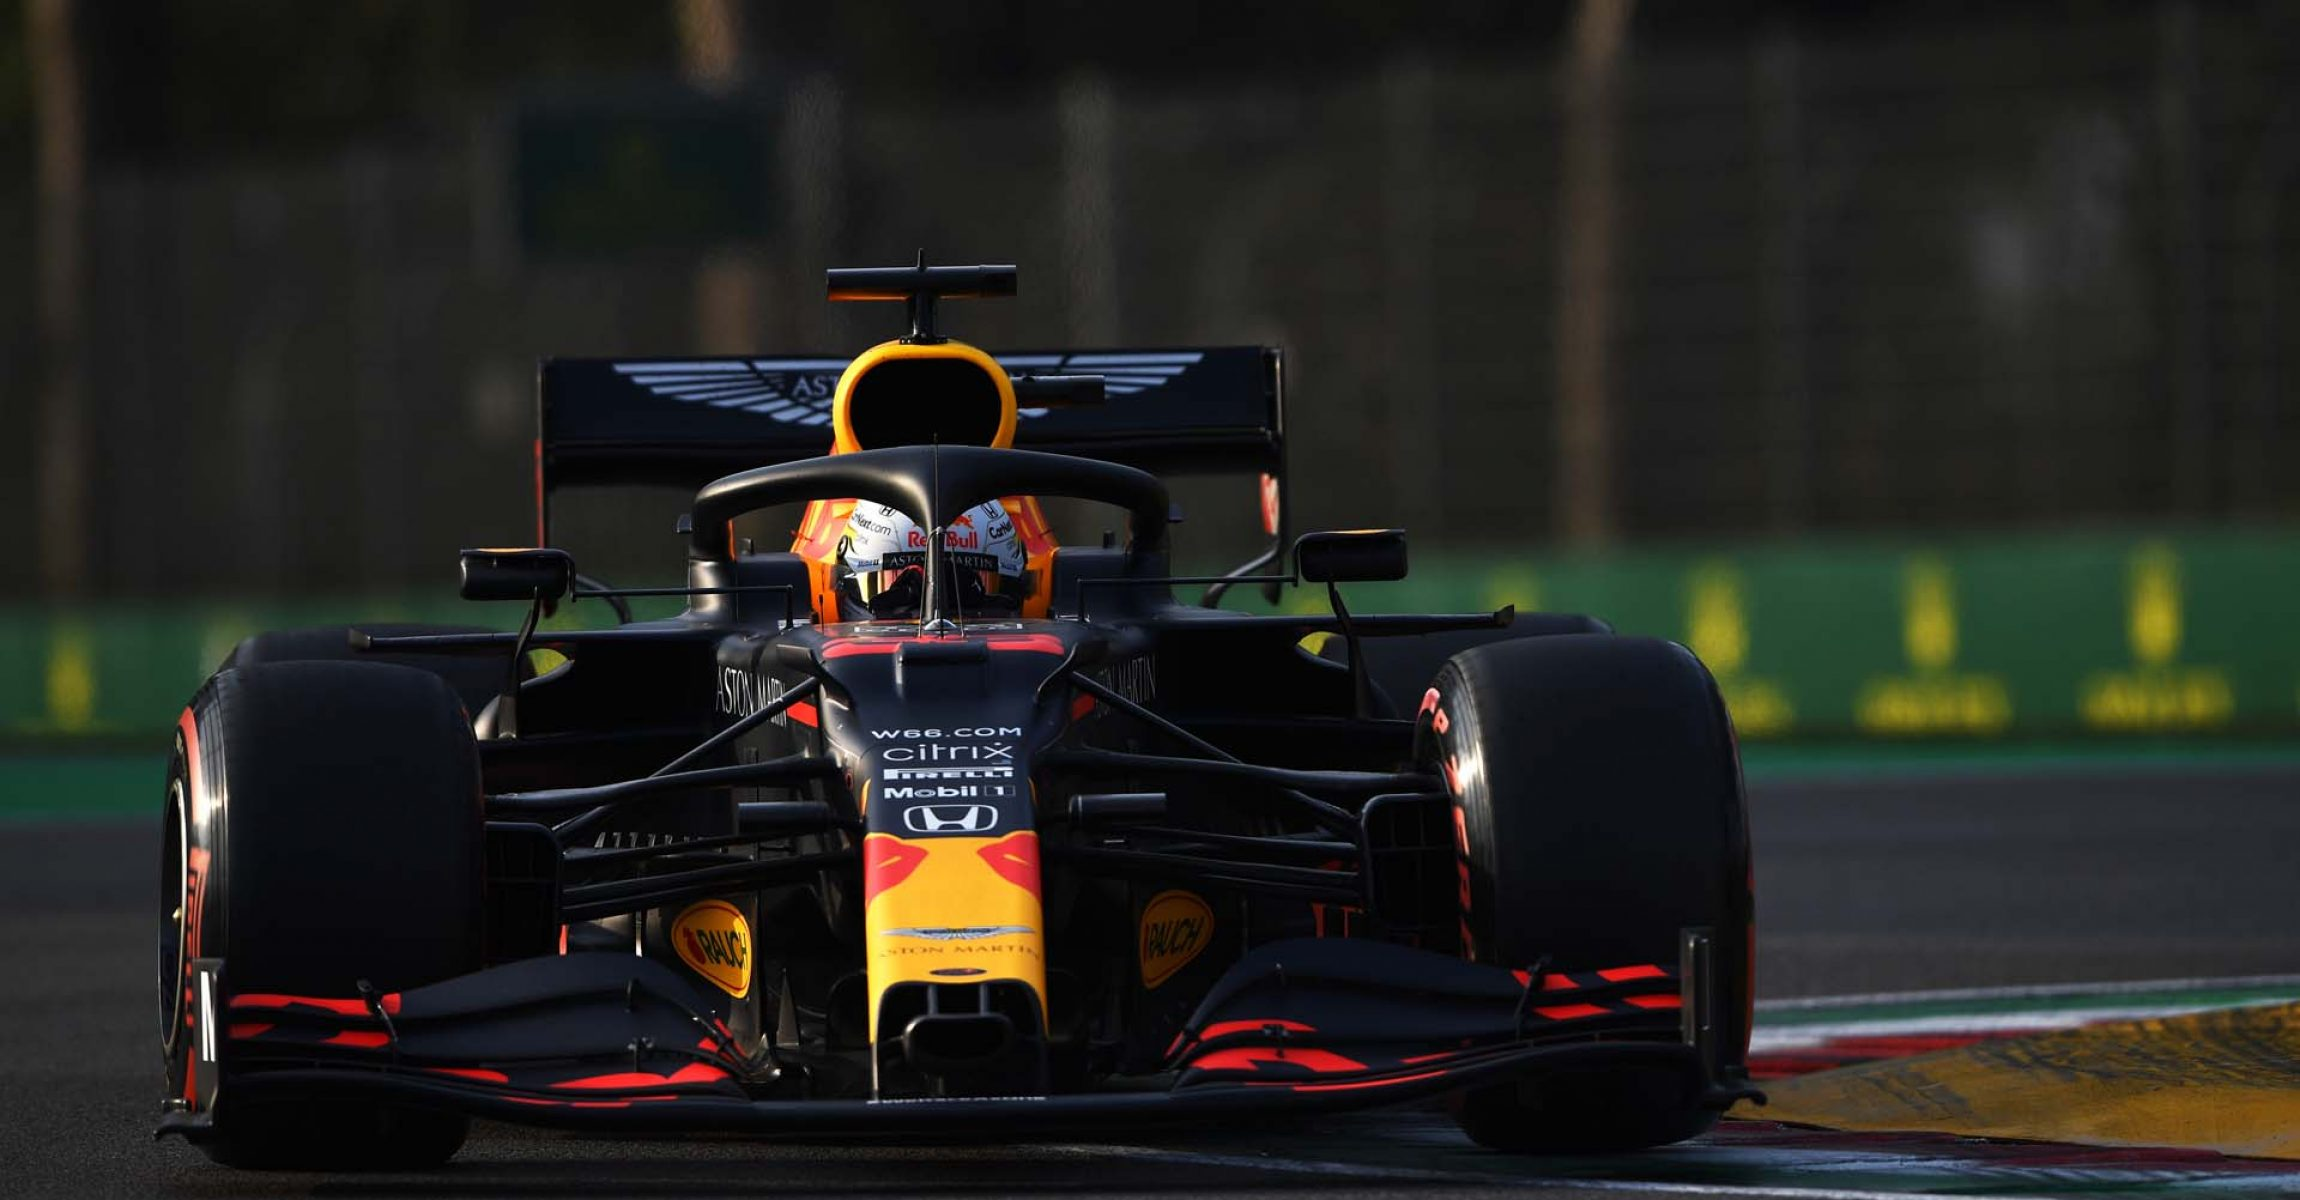 IMOLA, ITALY - OCTOBER 31: Max Verstappen of the Netherlands driving the (33) Aston Martin Red Bull Racing RB16 on track during qualifying ahead of the F1 Grand Prix of Emilia Romagna at Autodromo Enzo e Dino Ferrari on October 31, 2020 in Imola, Italy. (Photo by Rudy Carezzevoli/Getty Images)